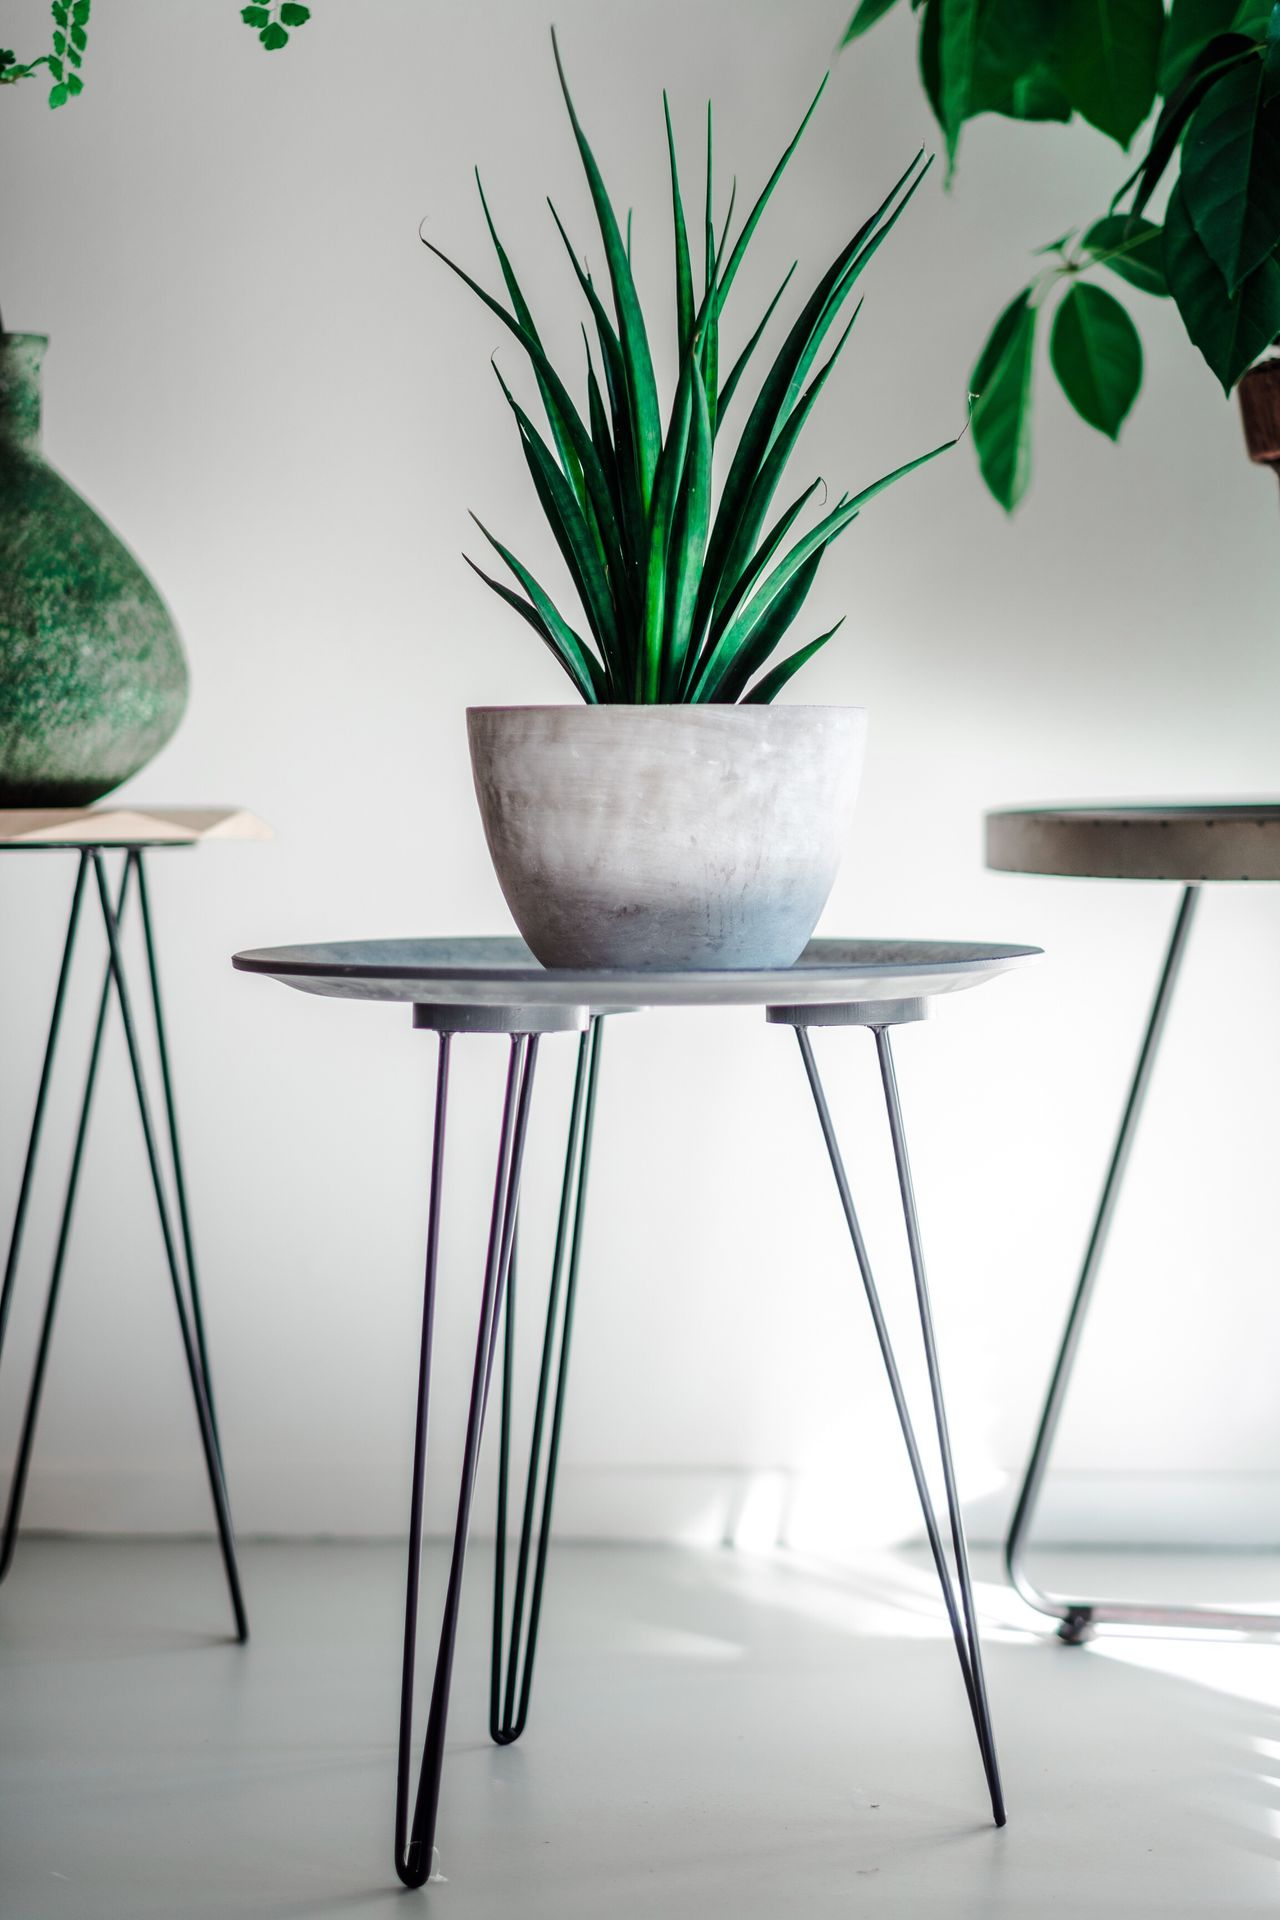 interior design interior detail home interior table Chair indoors no people Plant Green color Growth Freshness Nature day shadows furniture design lifestyles Home EyeEm Best Edits EyeEm gallery Netherlands Amsterdam EyeEm EyeEm Best Shots EyeEmBestEdits